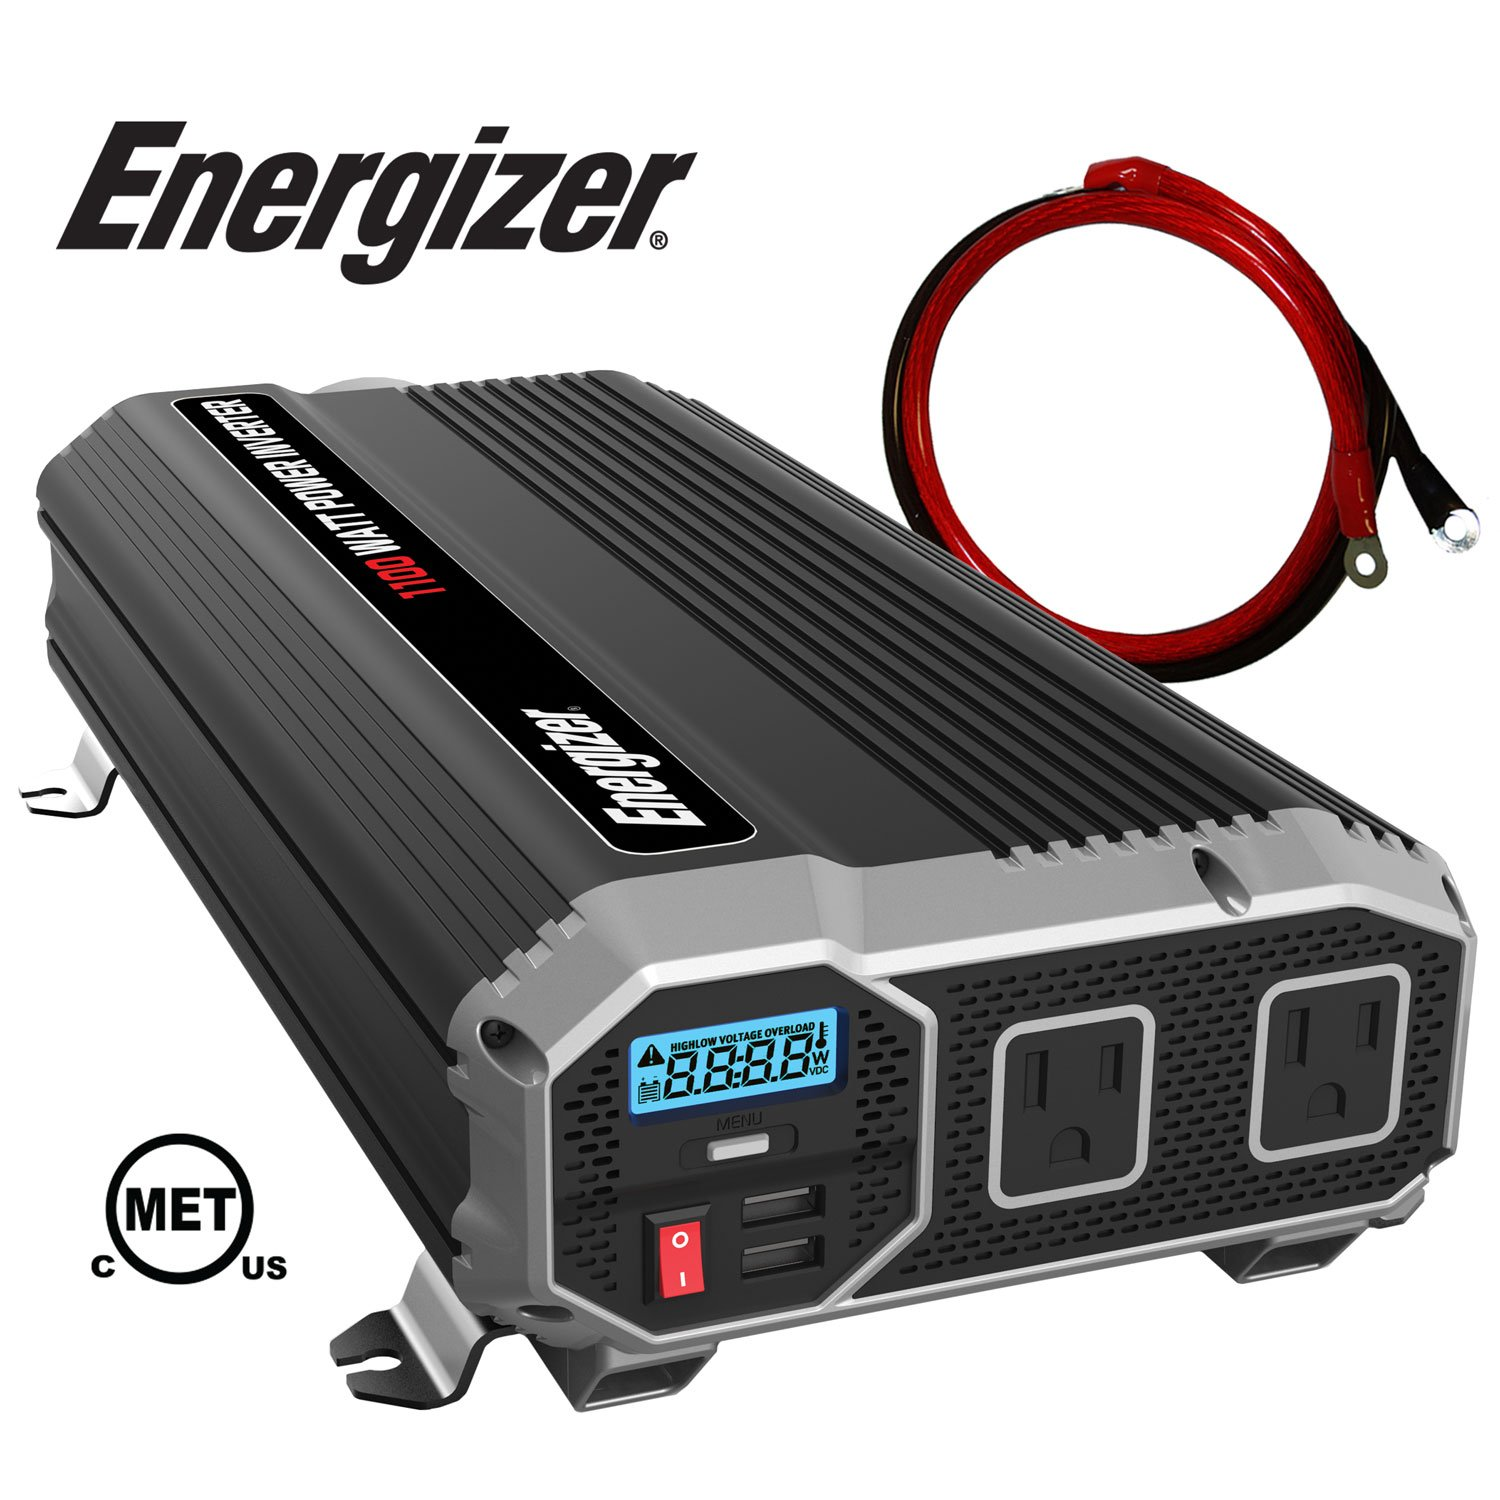 Energizer 1100 Watt 12V Power Inverter, Dual 110V AC Outlets, Automotive Back Up Power Supply Car Inverter, Converts 120 Volt AC with 2 USB Ports 2.4A Each by Energizer